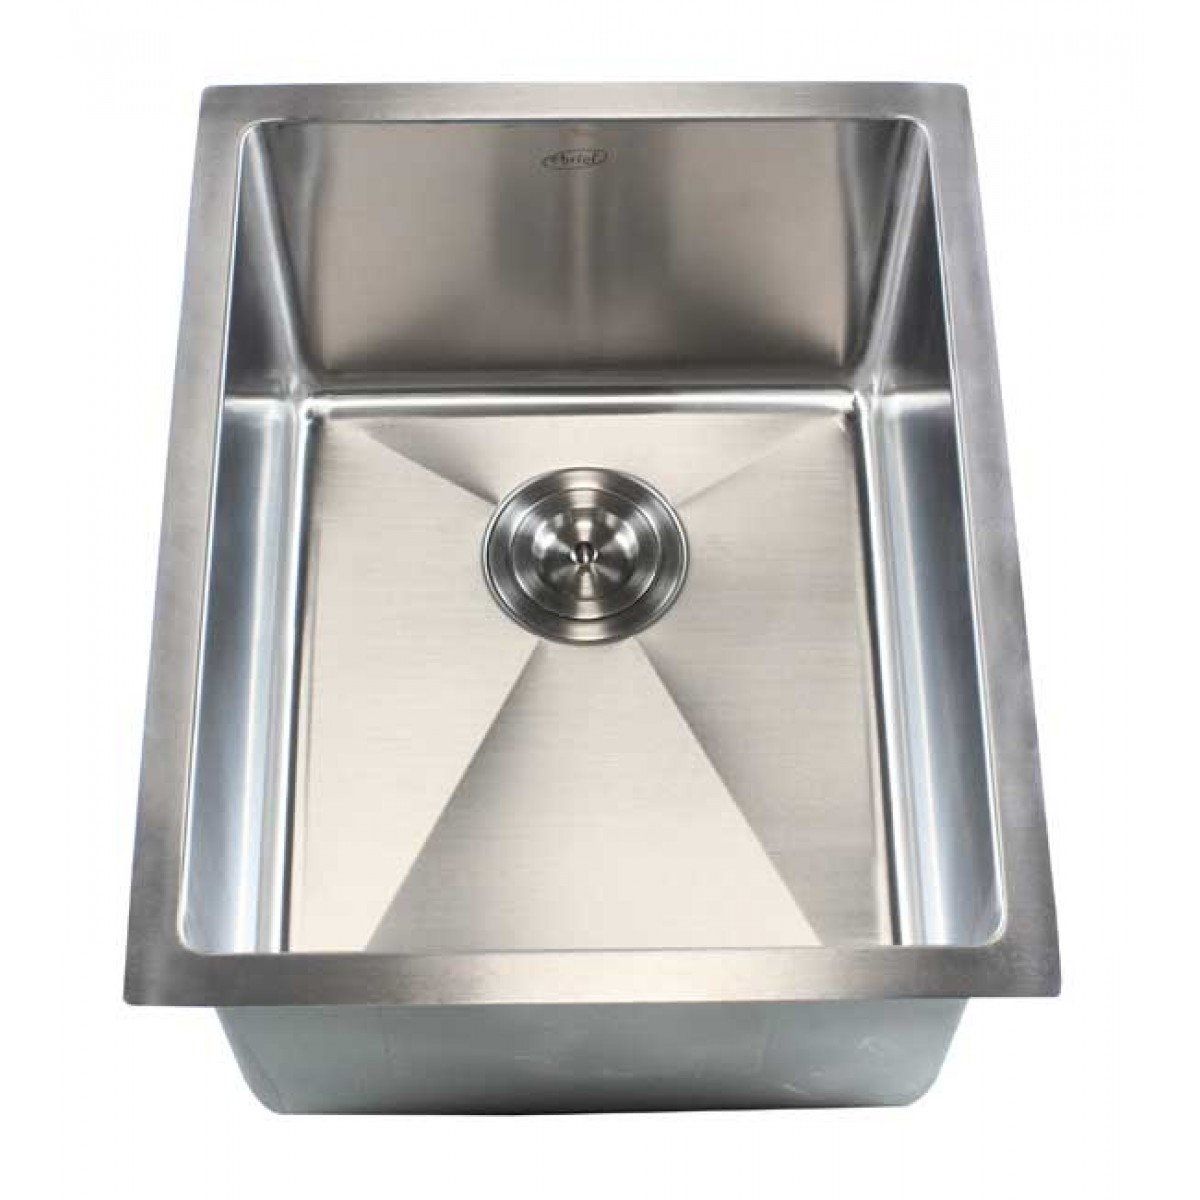 Ariel 16 Inch Stainless Steel Undermount Single Bowl